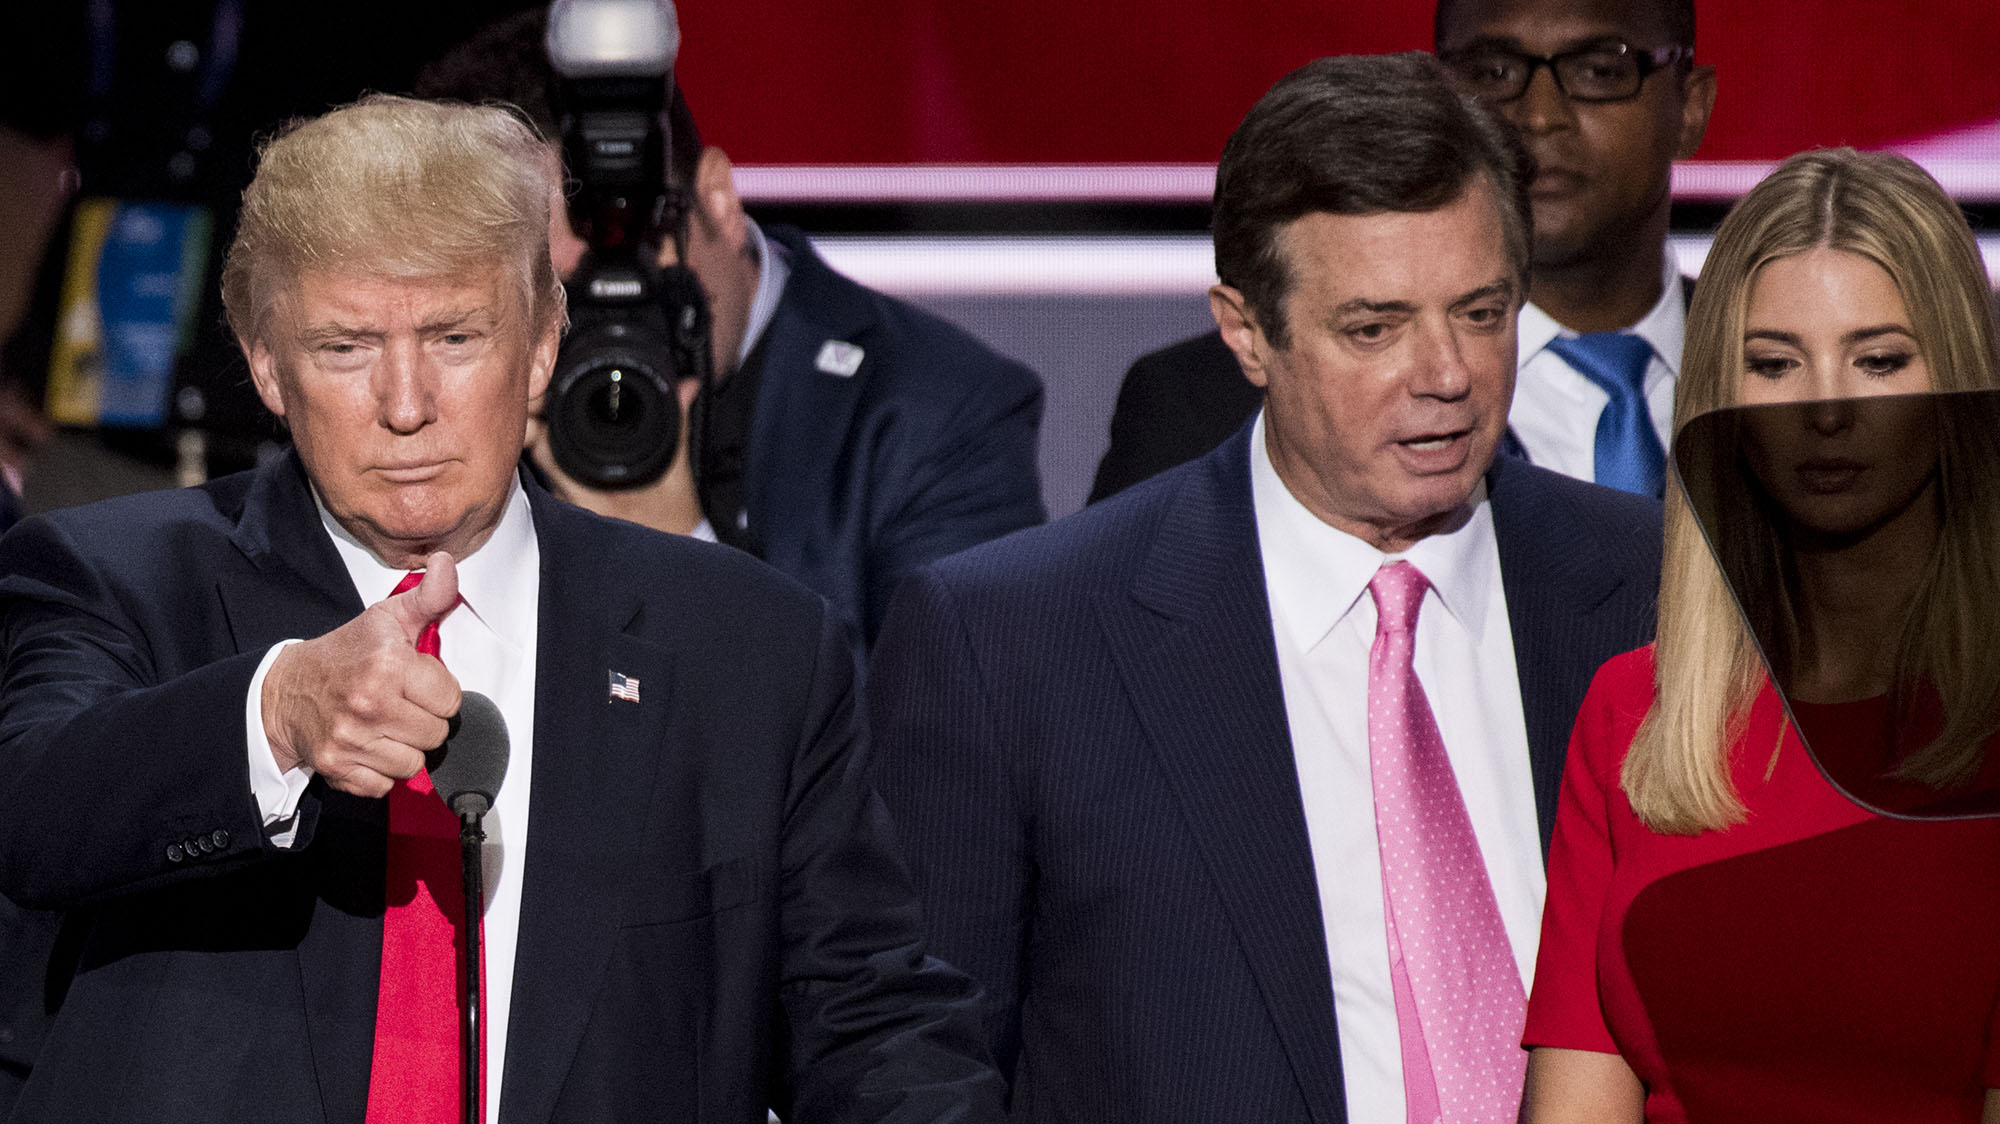 Mueller's Team Told Manafort to Expect an Indictment